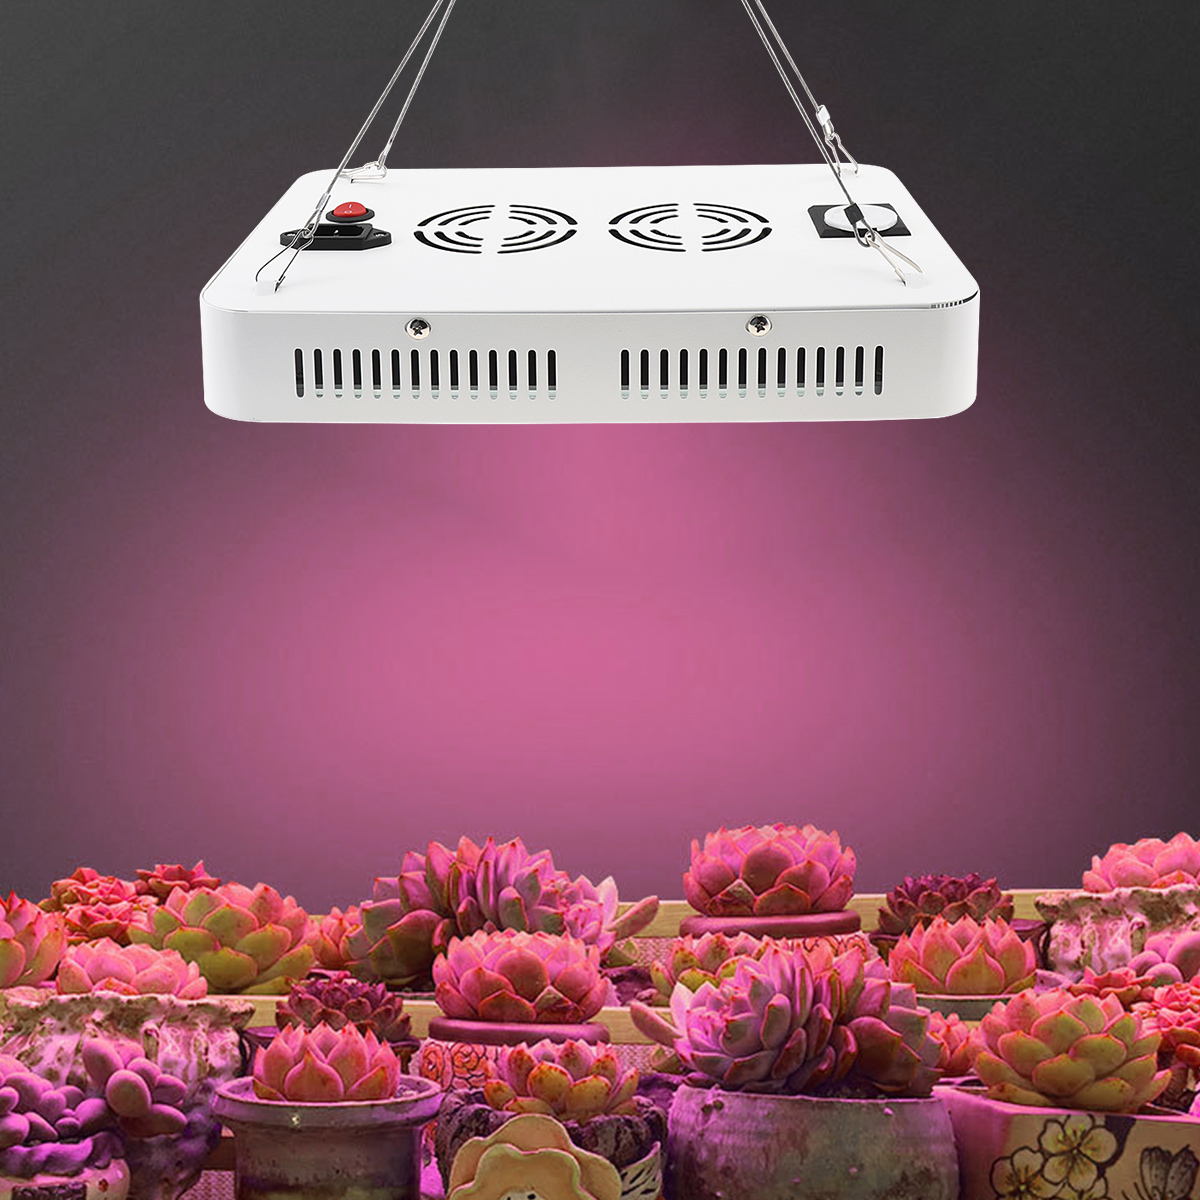 LED Plant Grow Light 1000W Full Spectrum Sunlike Plant Light Dual Chip with ON/Off Switch for Indoor Plants / Seedling / Succulents / Growing / Blooming / Fruit